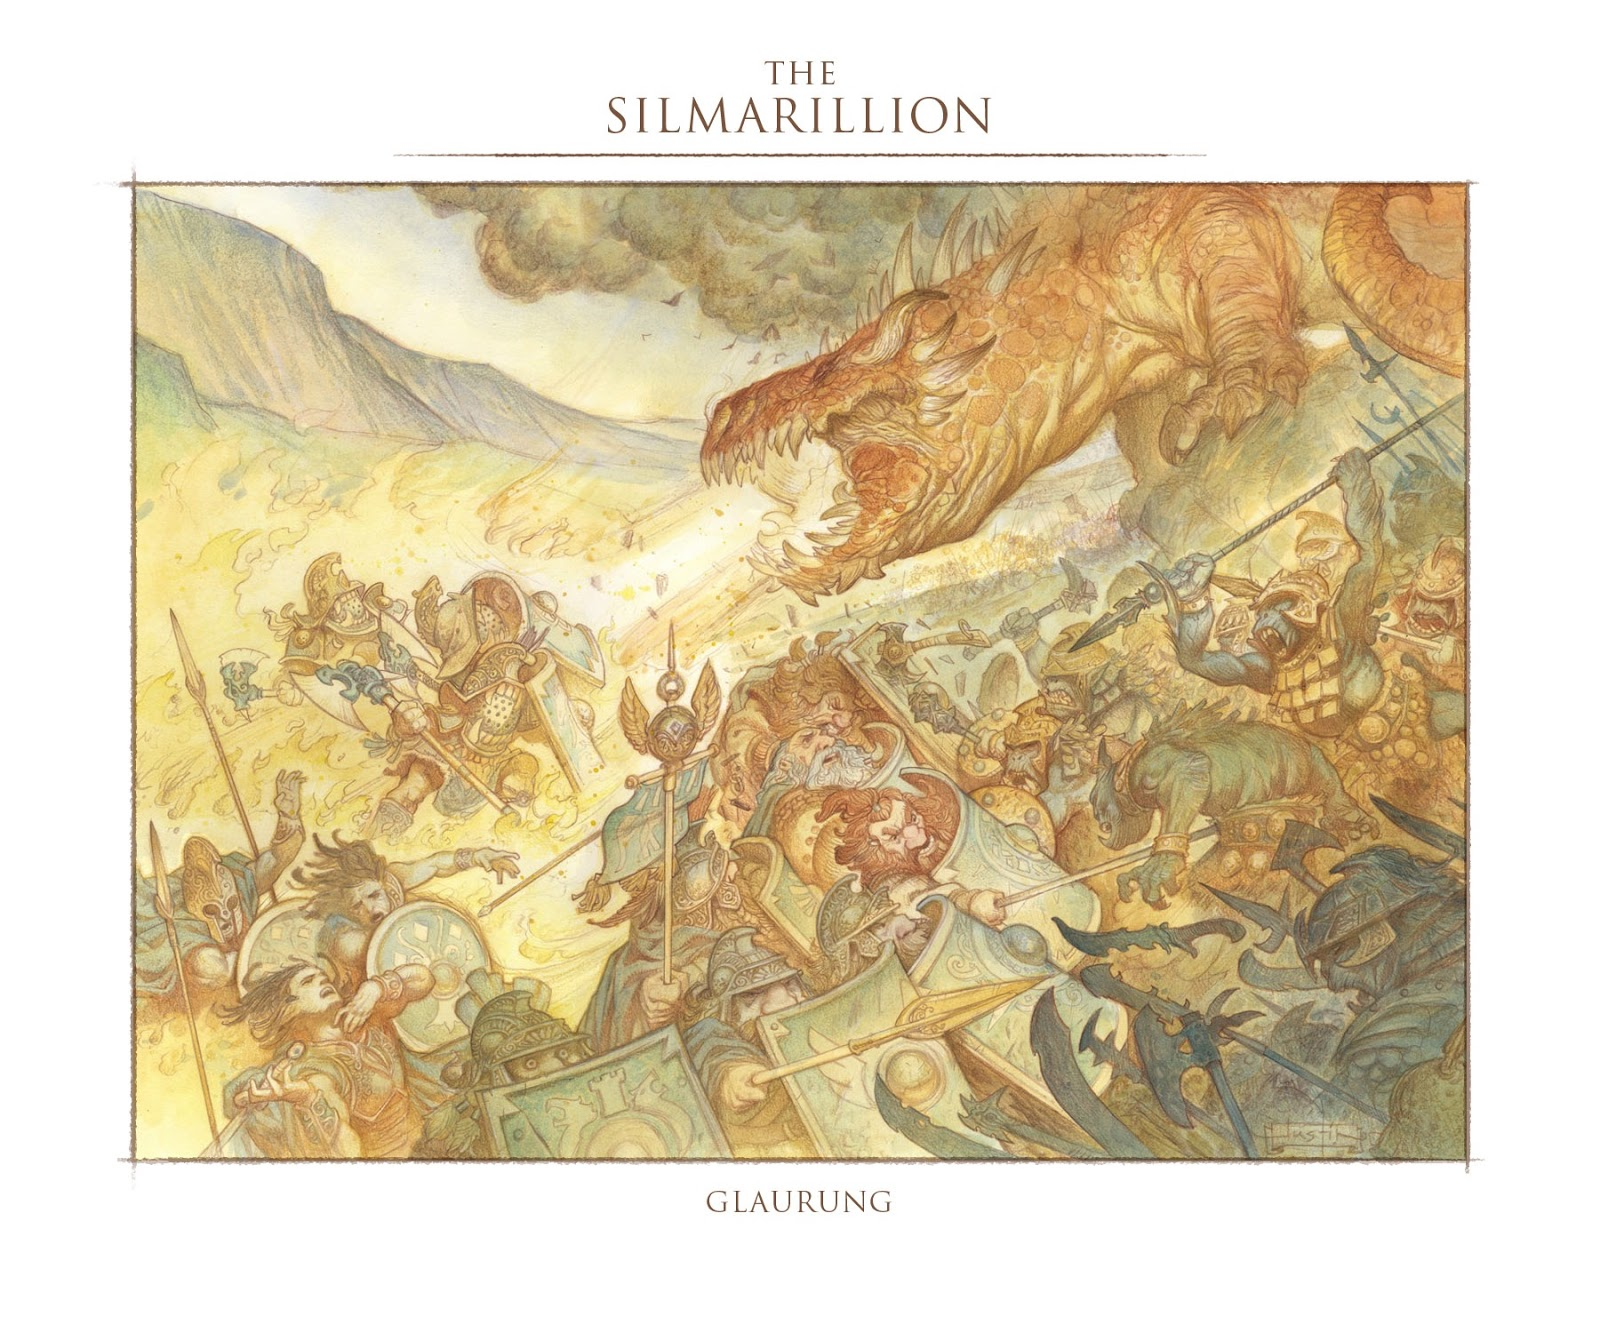 The Silmarillion: Glaurung Final